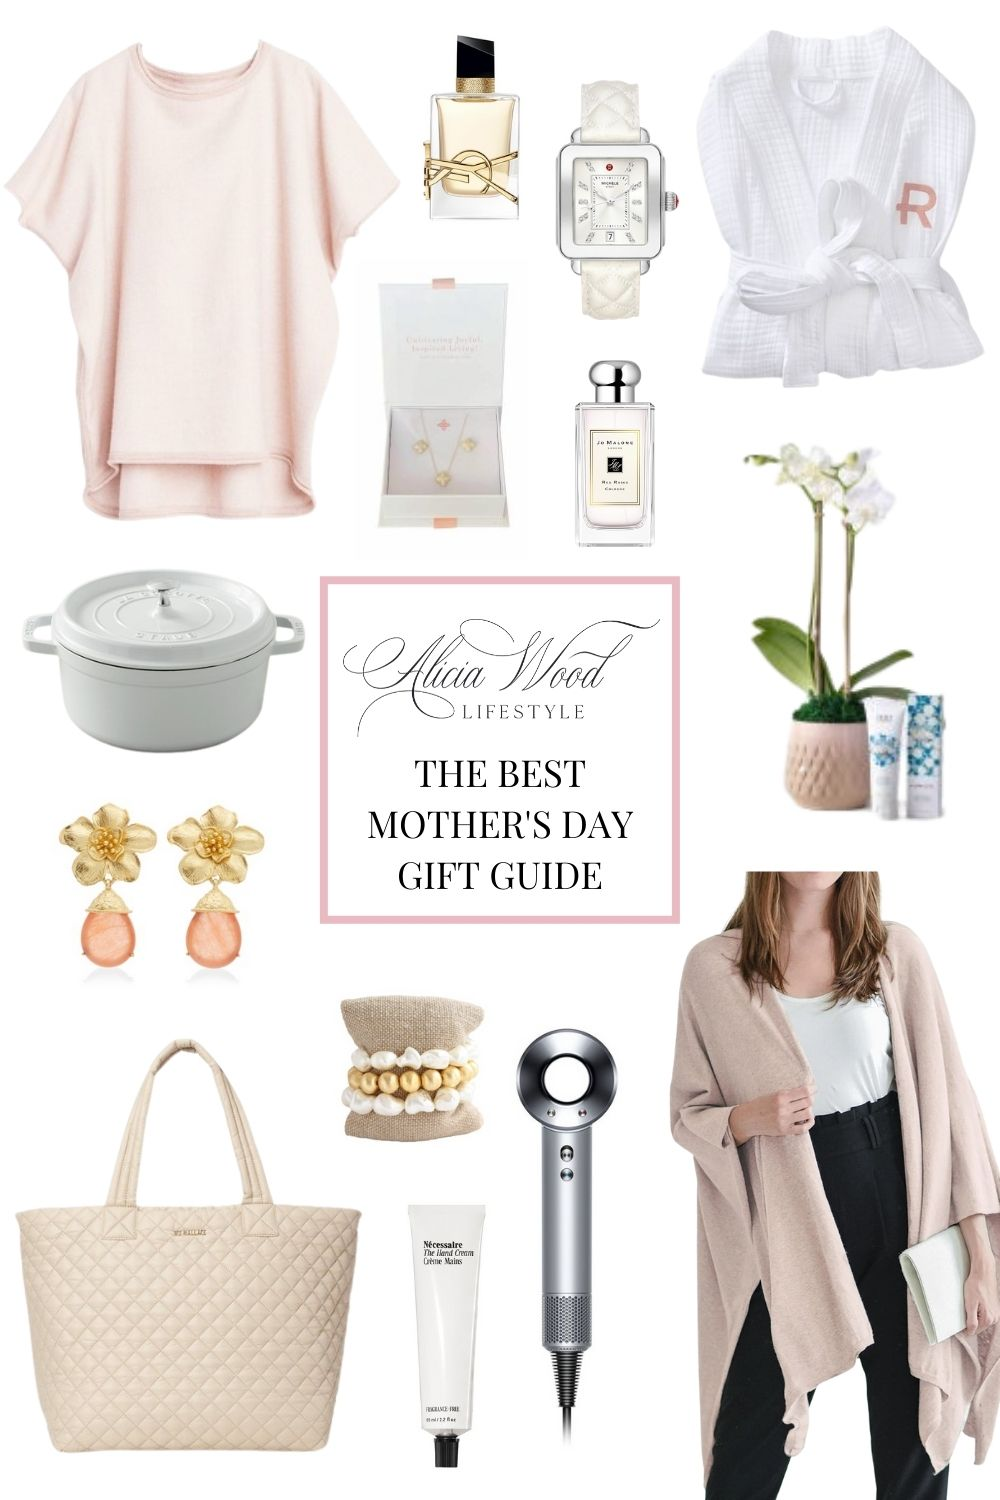 The Best Mother's Day Gift Guide